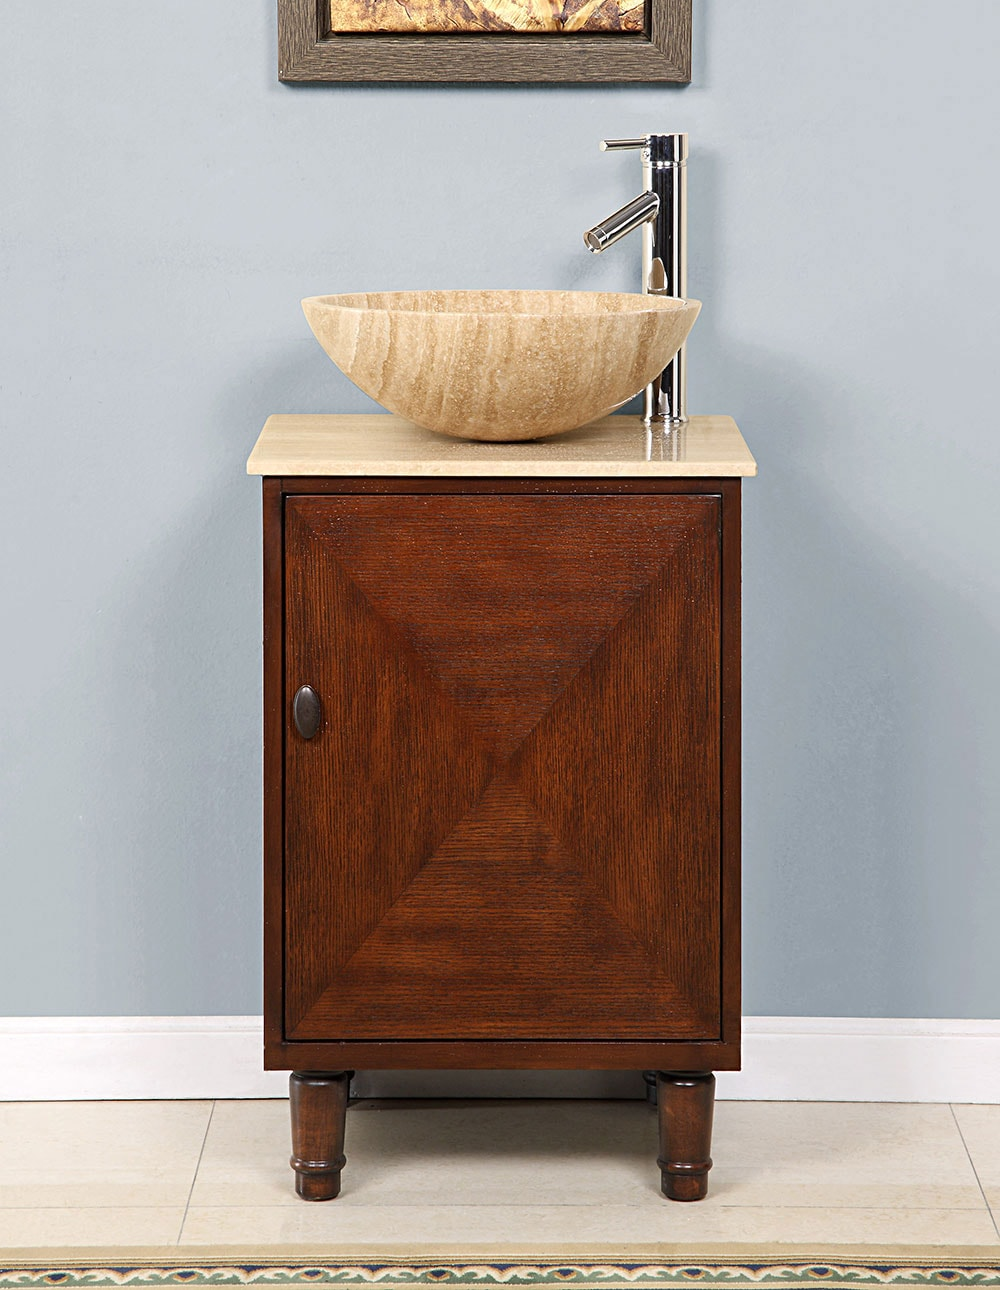 Bathroom single sink cabinets - Silkroad Exclusive Stone Countertop Bathroom Vessel Single Sink Cabinet Vanity